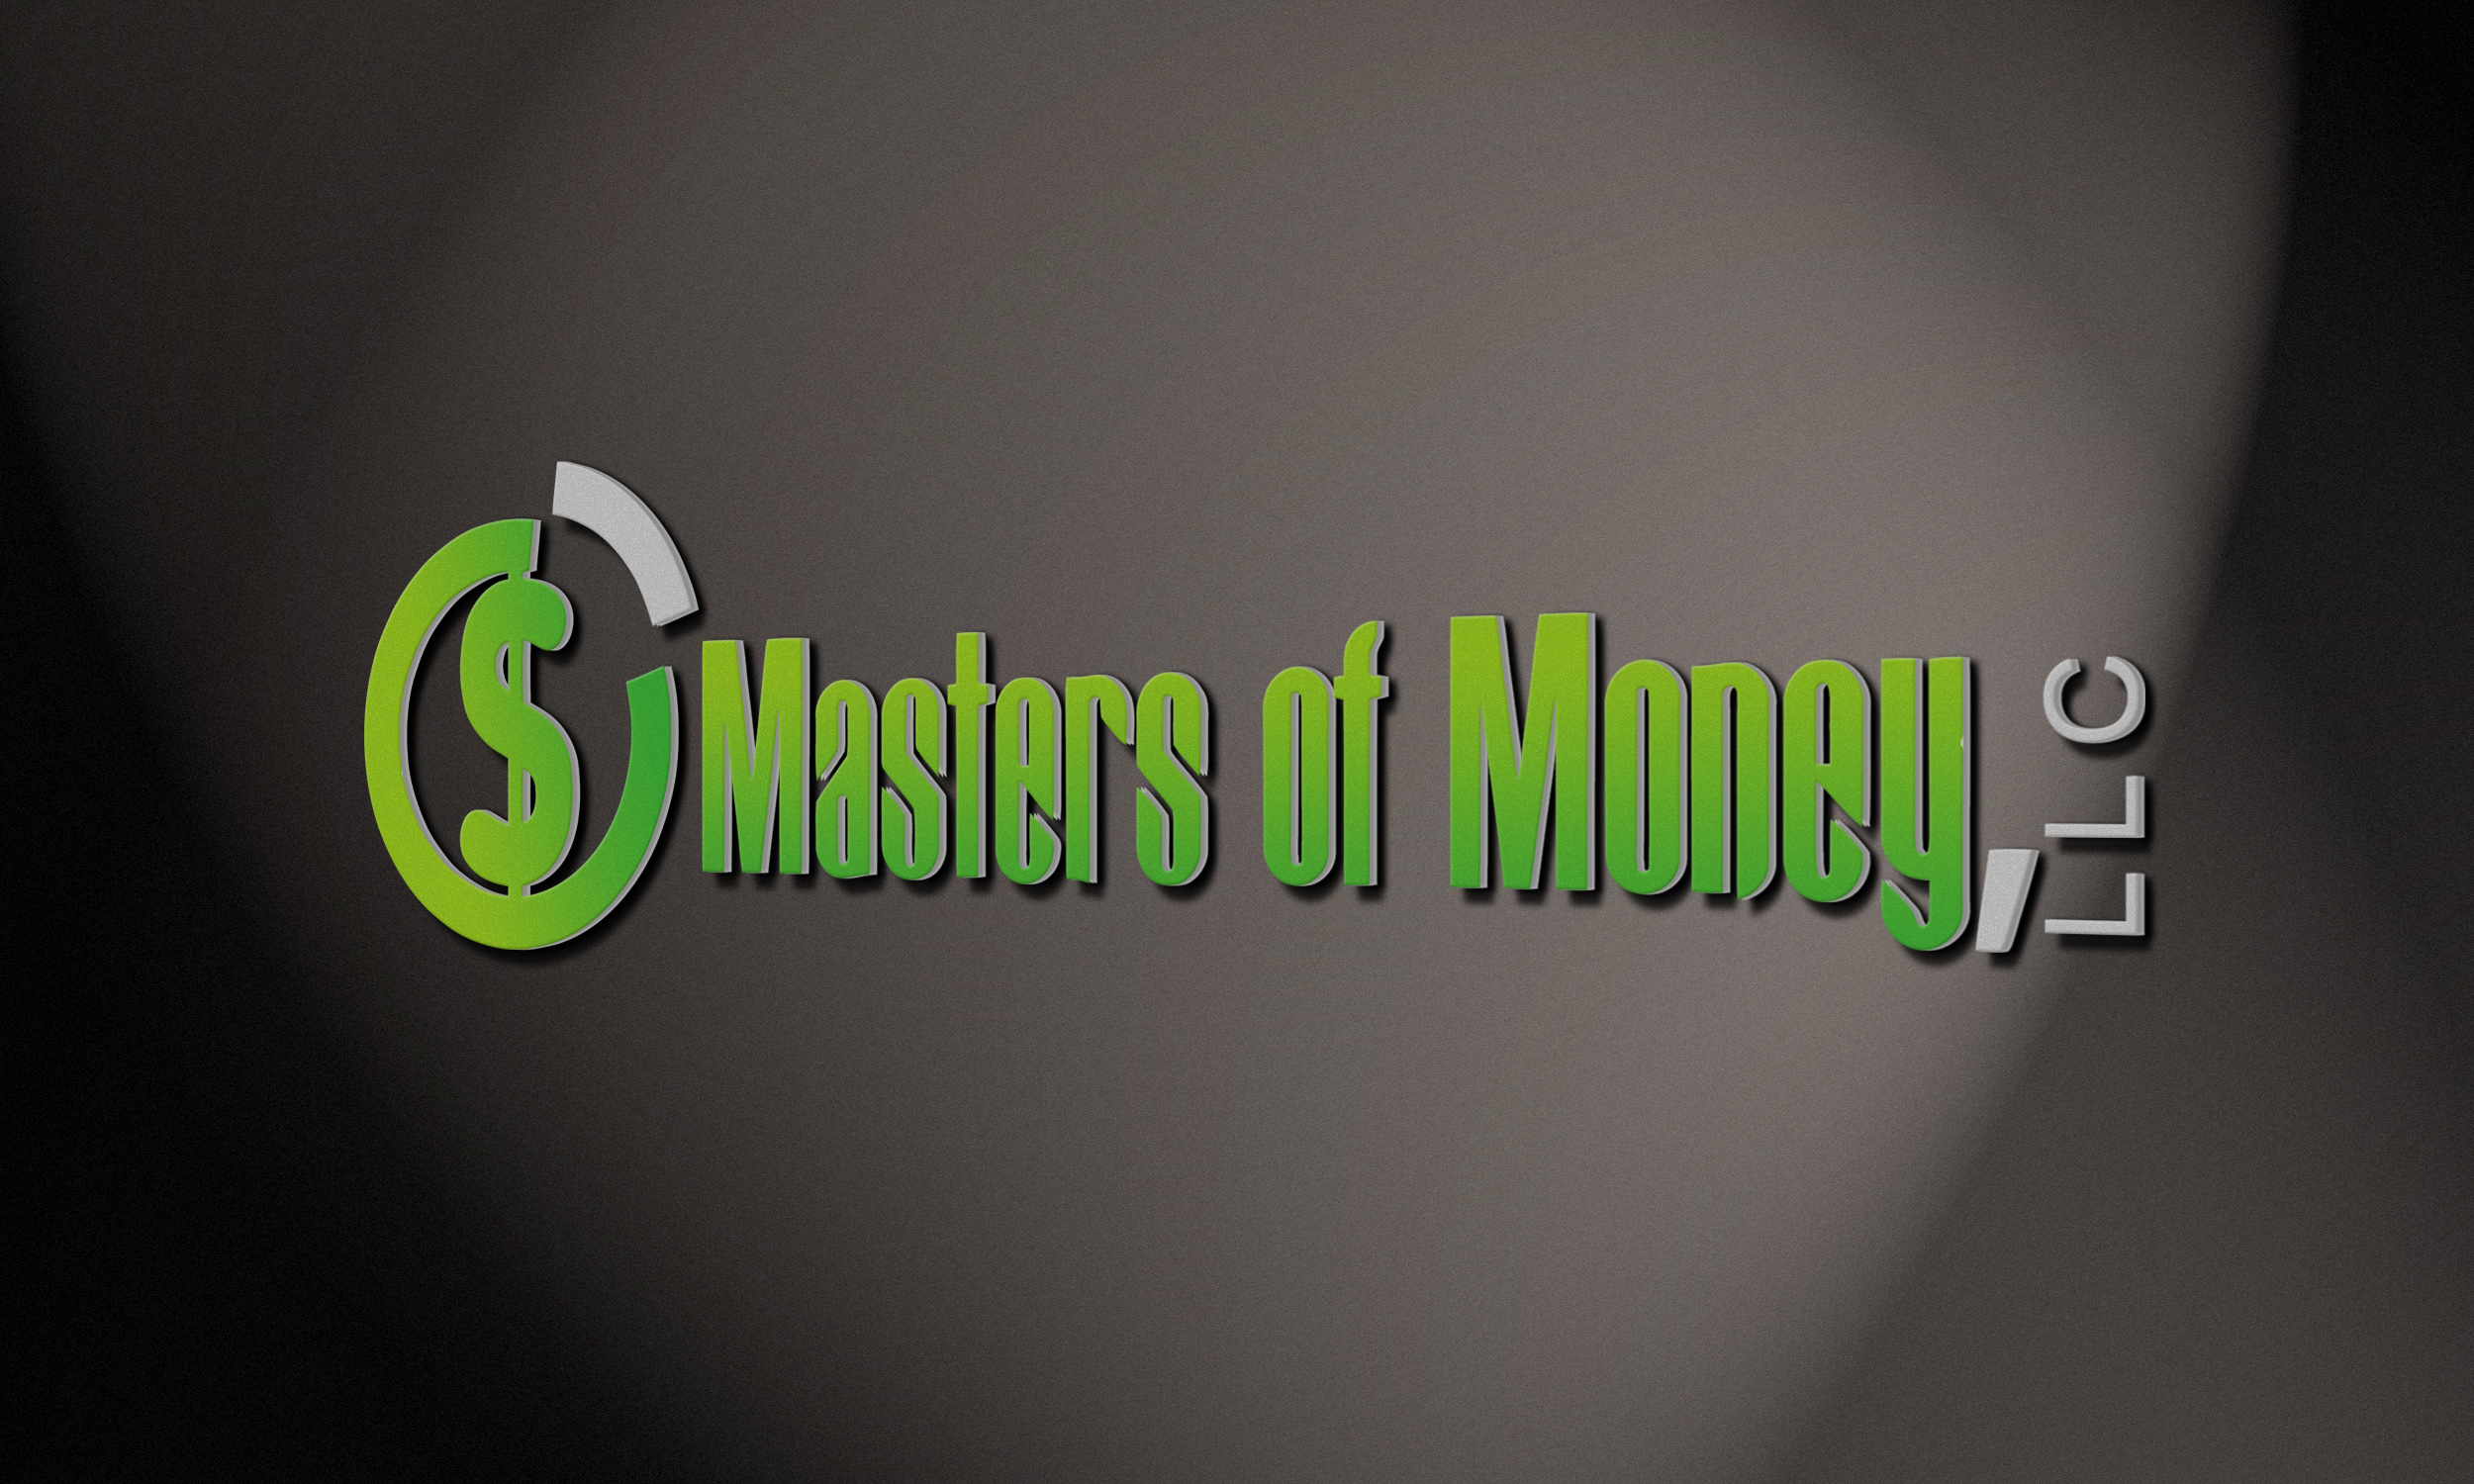 Masters of Money LLC Logo Placement Image